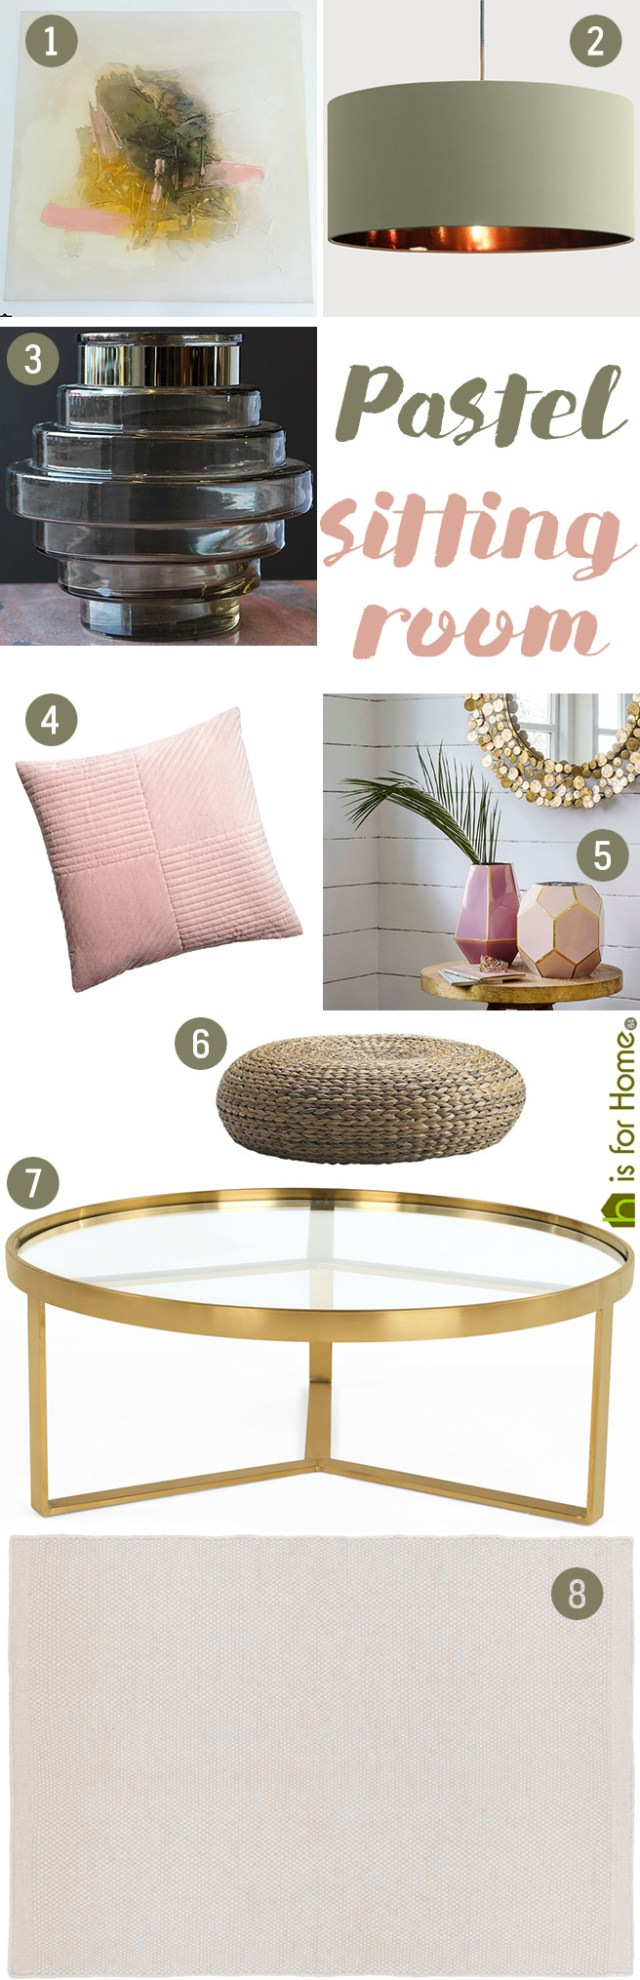 Get their look: Pastel sitting room | H is for Home